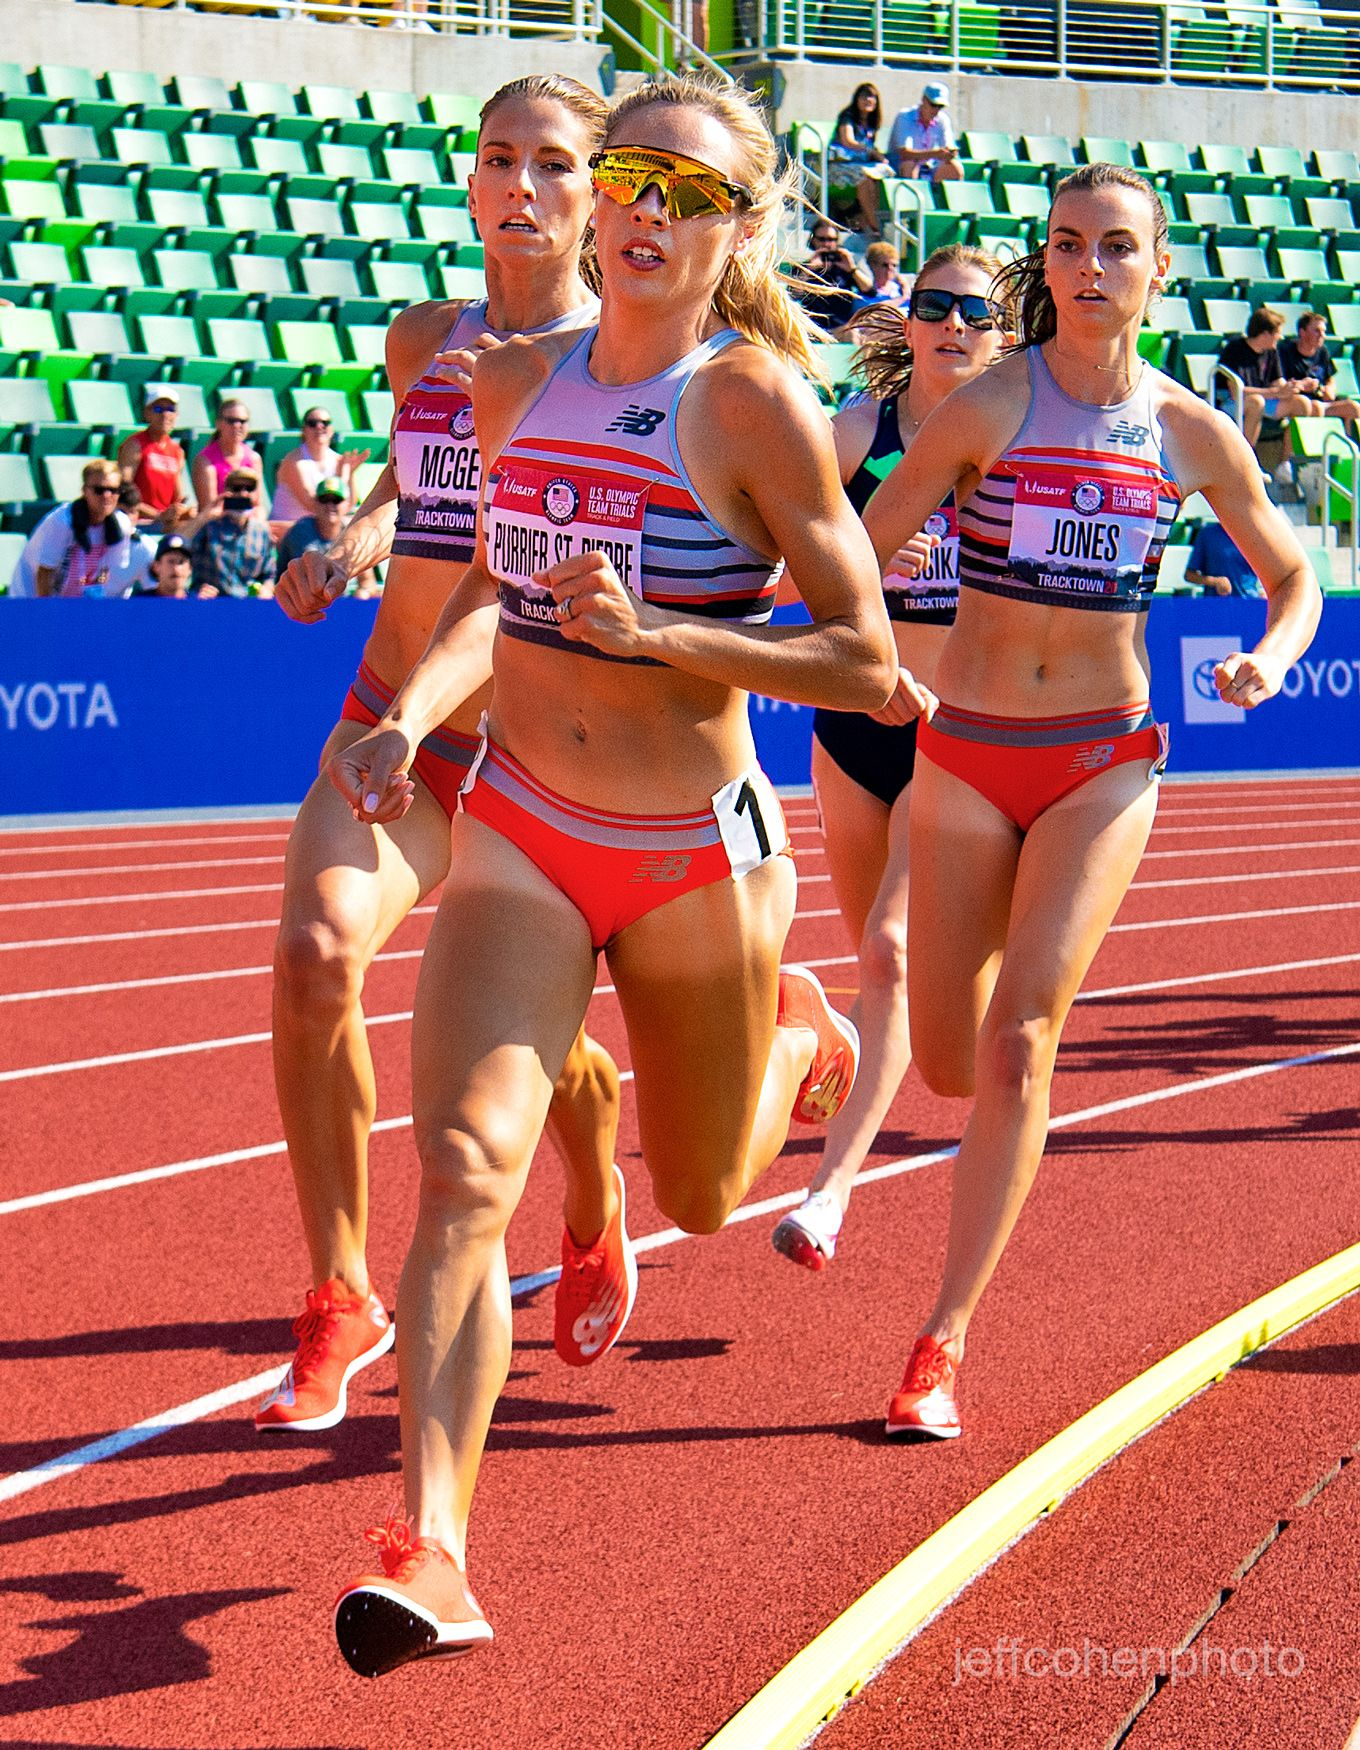 purrier-1500w-2021-US-Oly-Trials-day-4-2467-jeff-cohen-photo--web.jpg